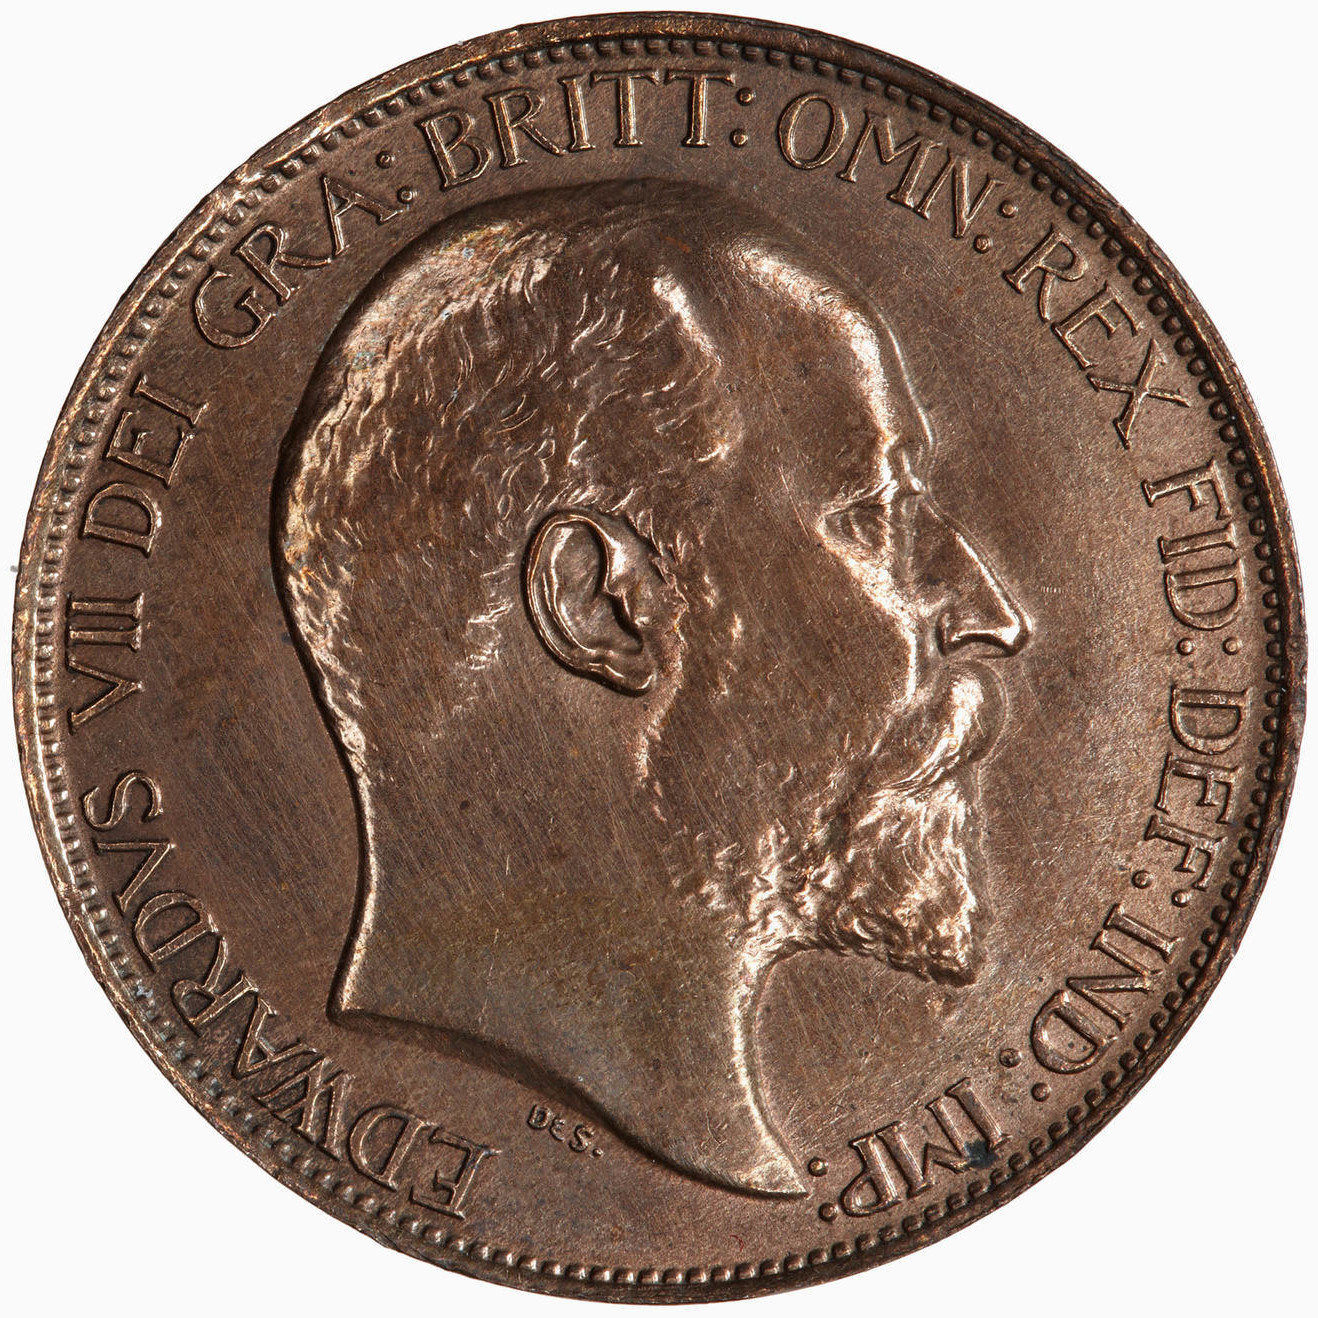 Halfpenny 1902: Photo Coin - Halfpenny, Edward VII, Great Britain, 1902